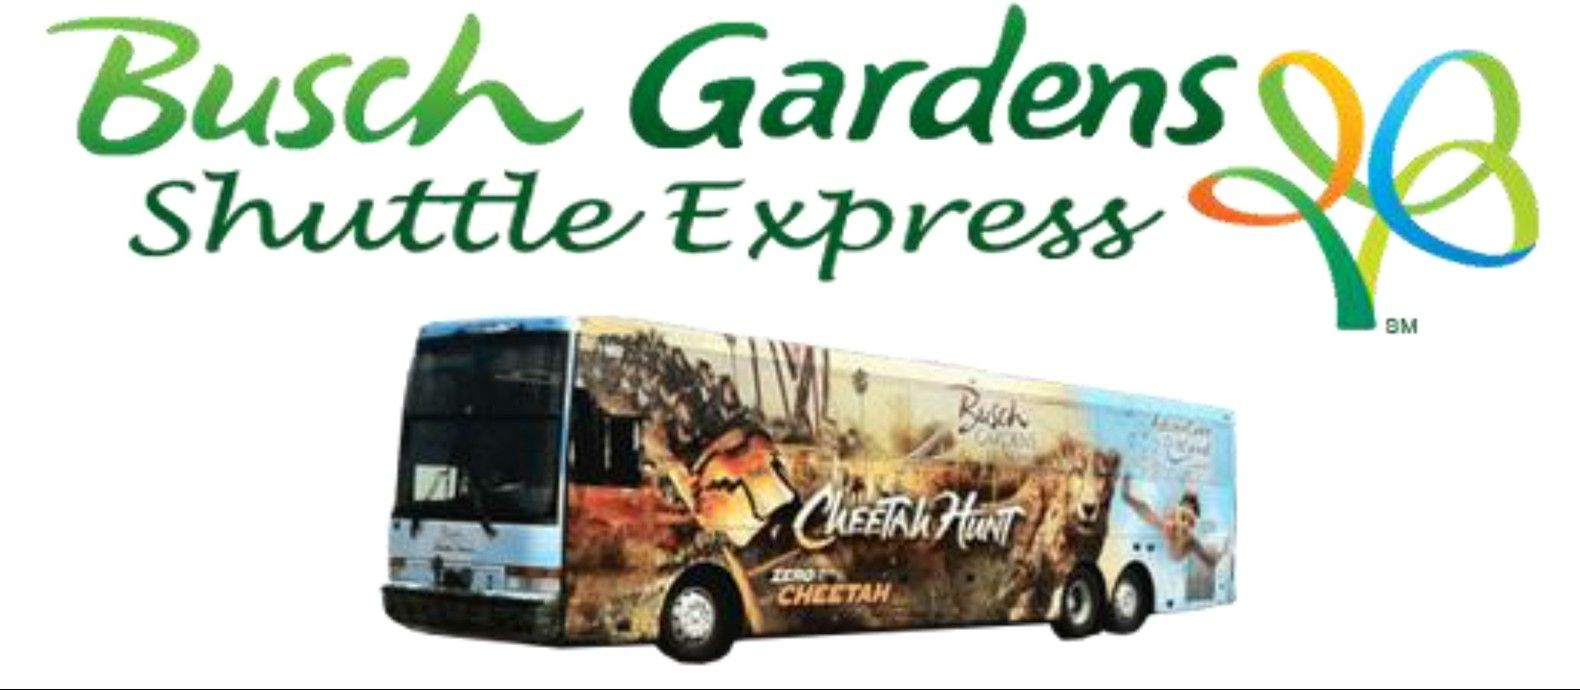 c8617d7dc0a95bd0d2ab897ab5dab768 - Transportation From Seaworld To Busch Gardens